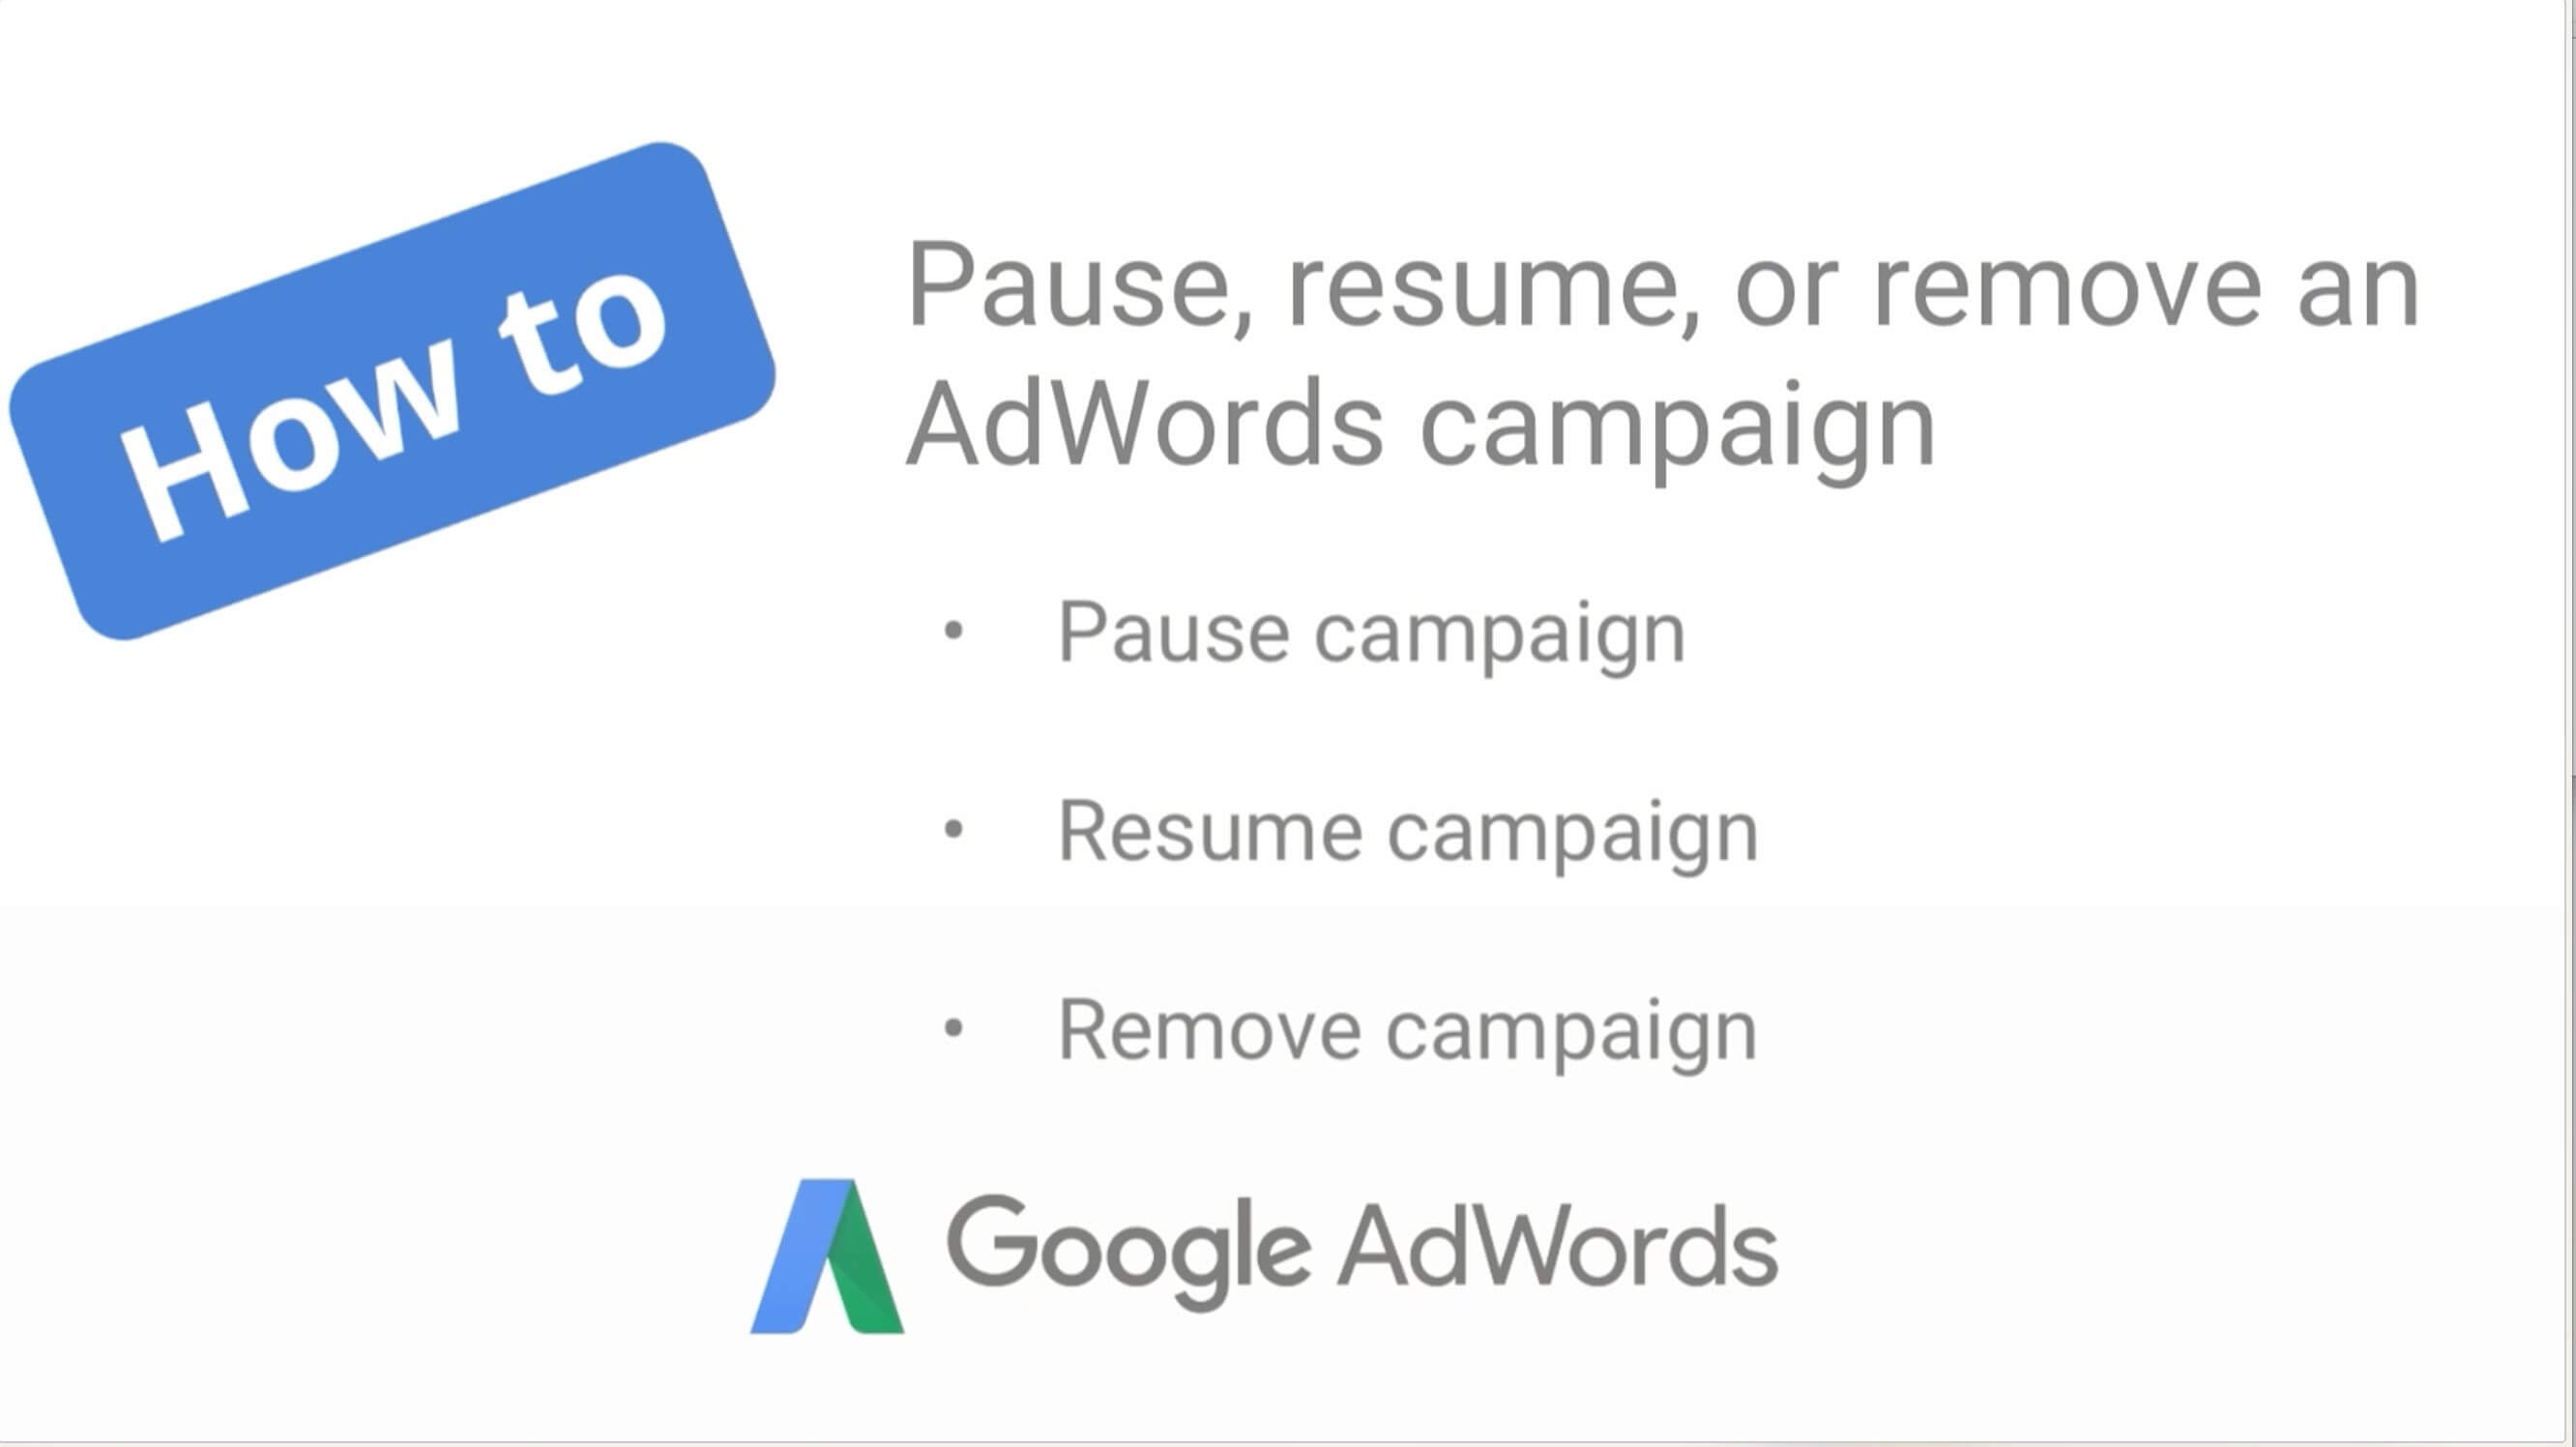 How to pause, resume, or remove an AdWords campaign